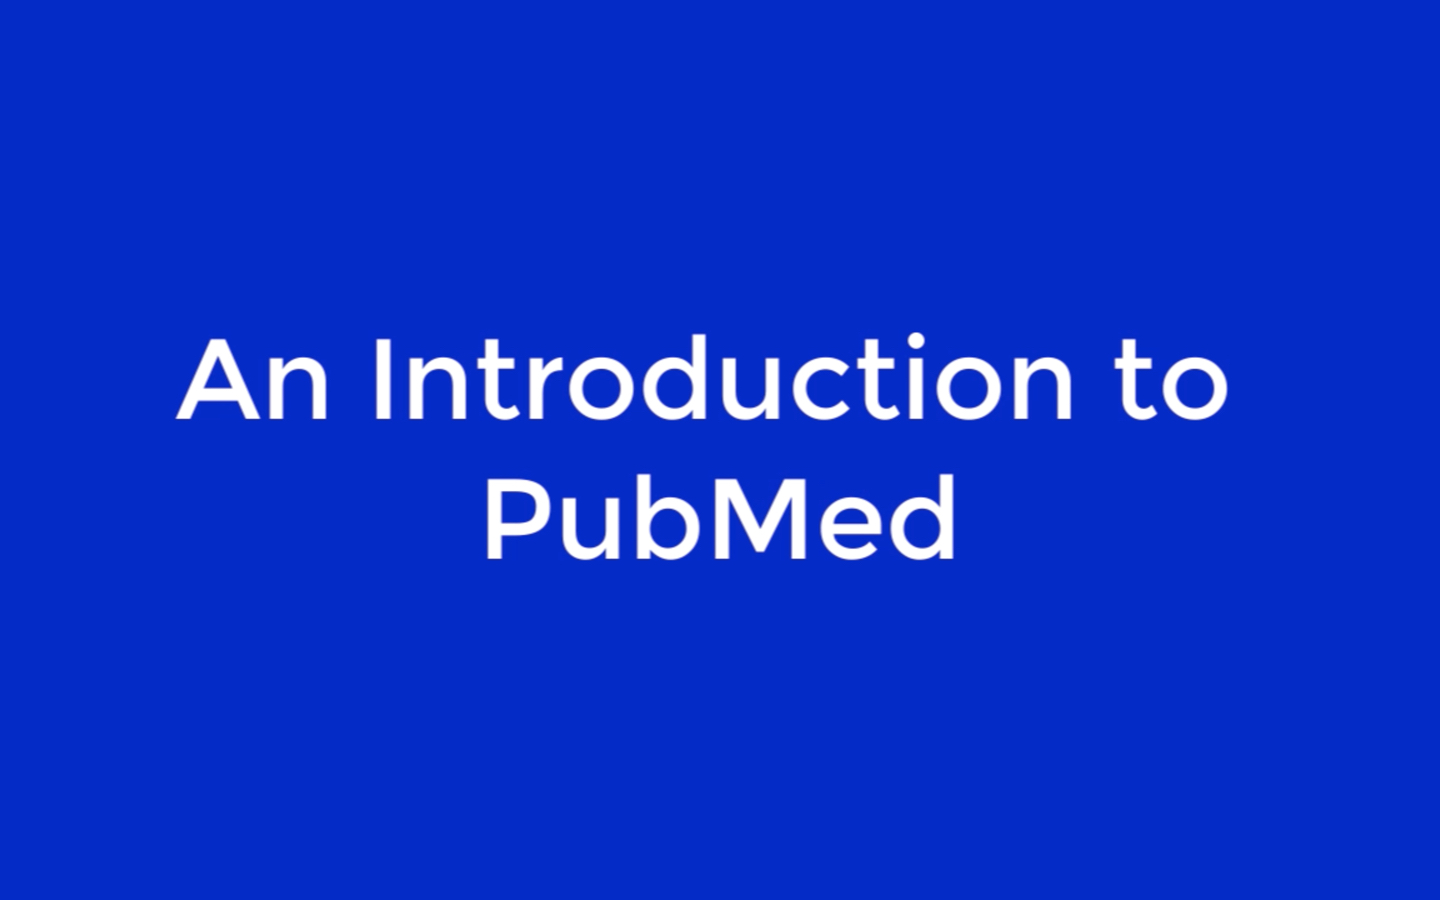 An Introduction to PubMed [title card]